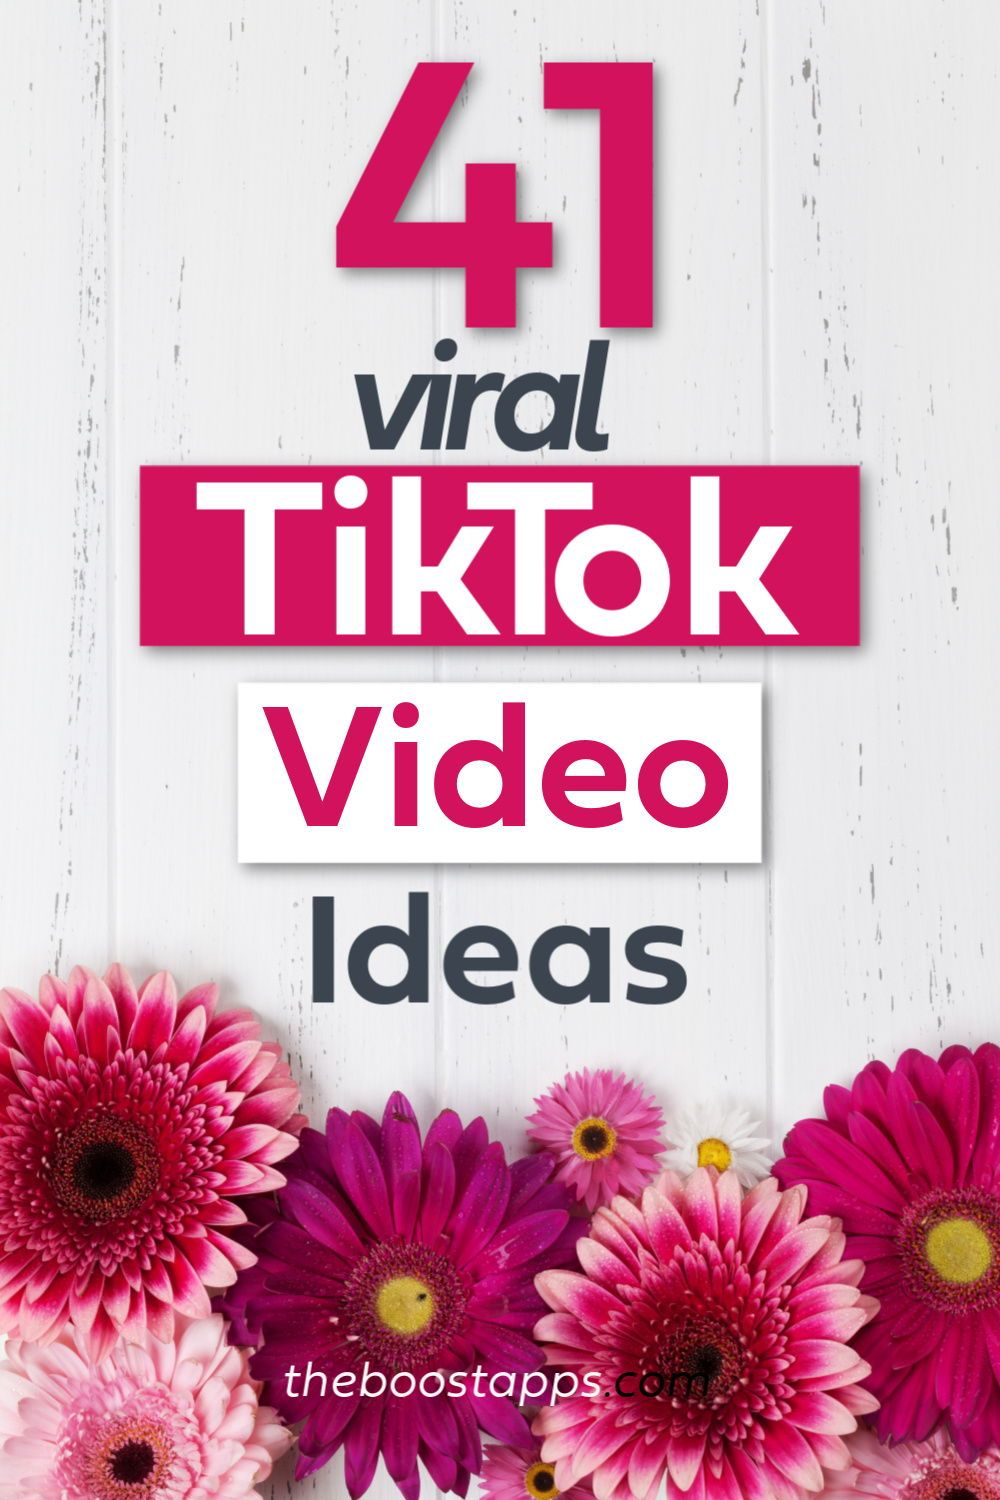 41 Tiktok Video Ideas For Small Businesses Boosted Marketing Strategy Social Media Business Trends Business Boost